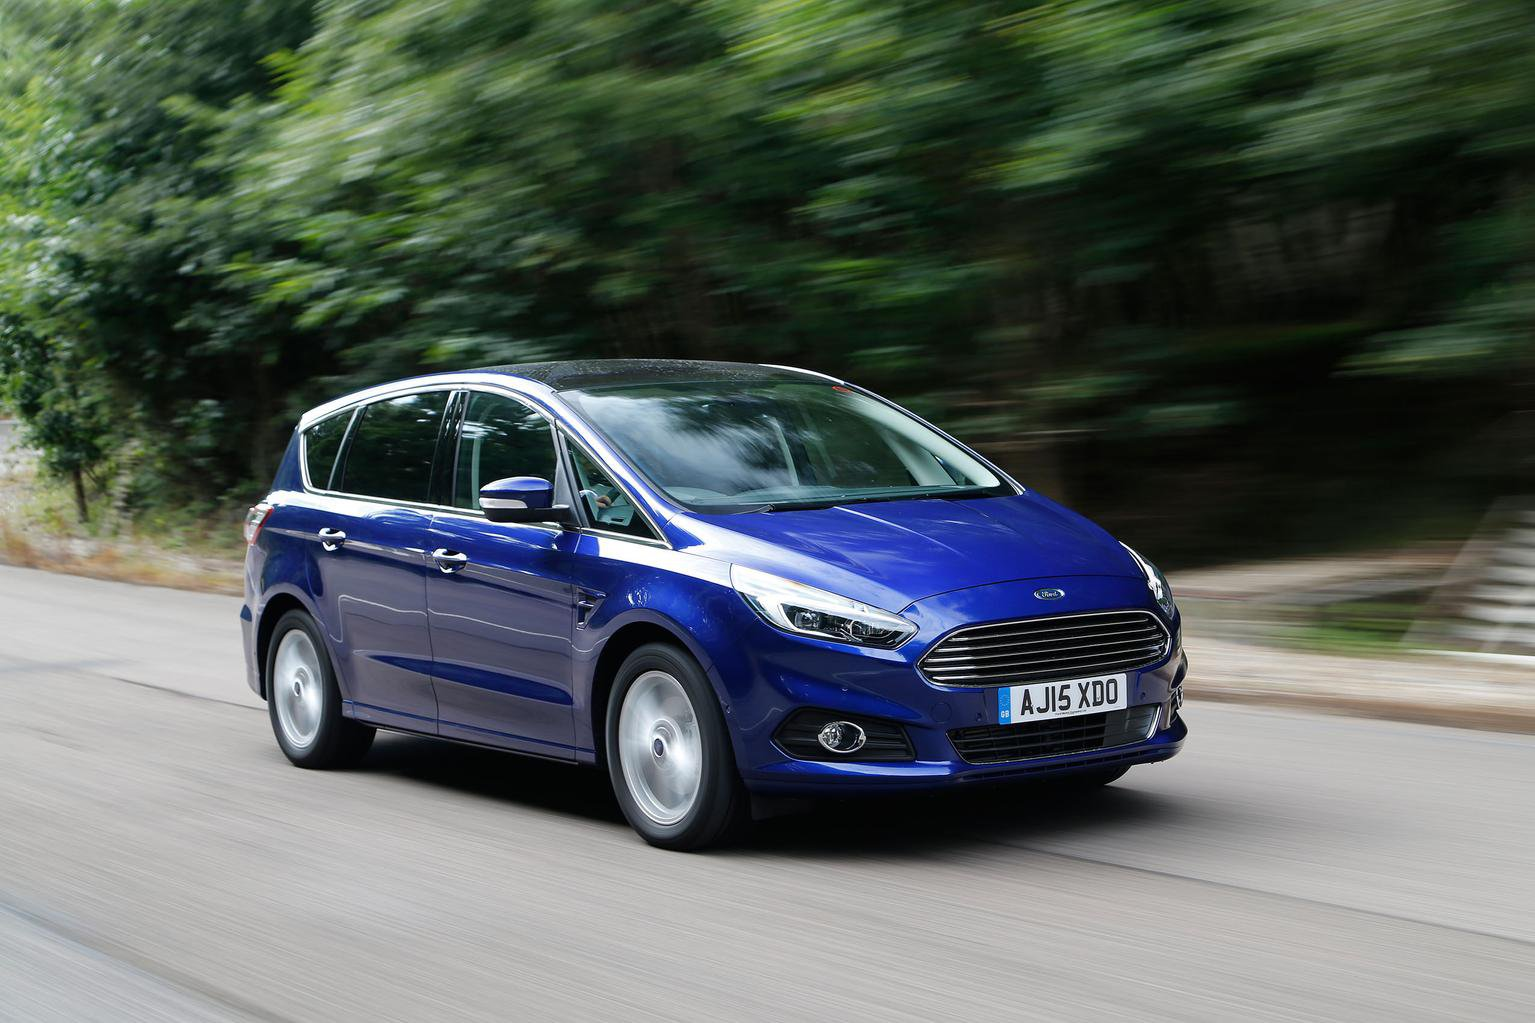 2015 Ford S-Max 1.5 Ecoboost 160 SCTi review